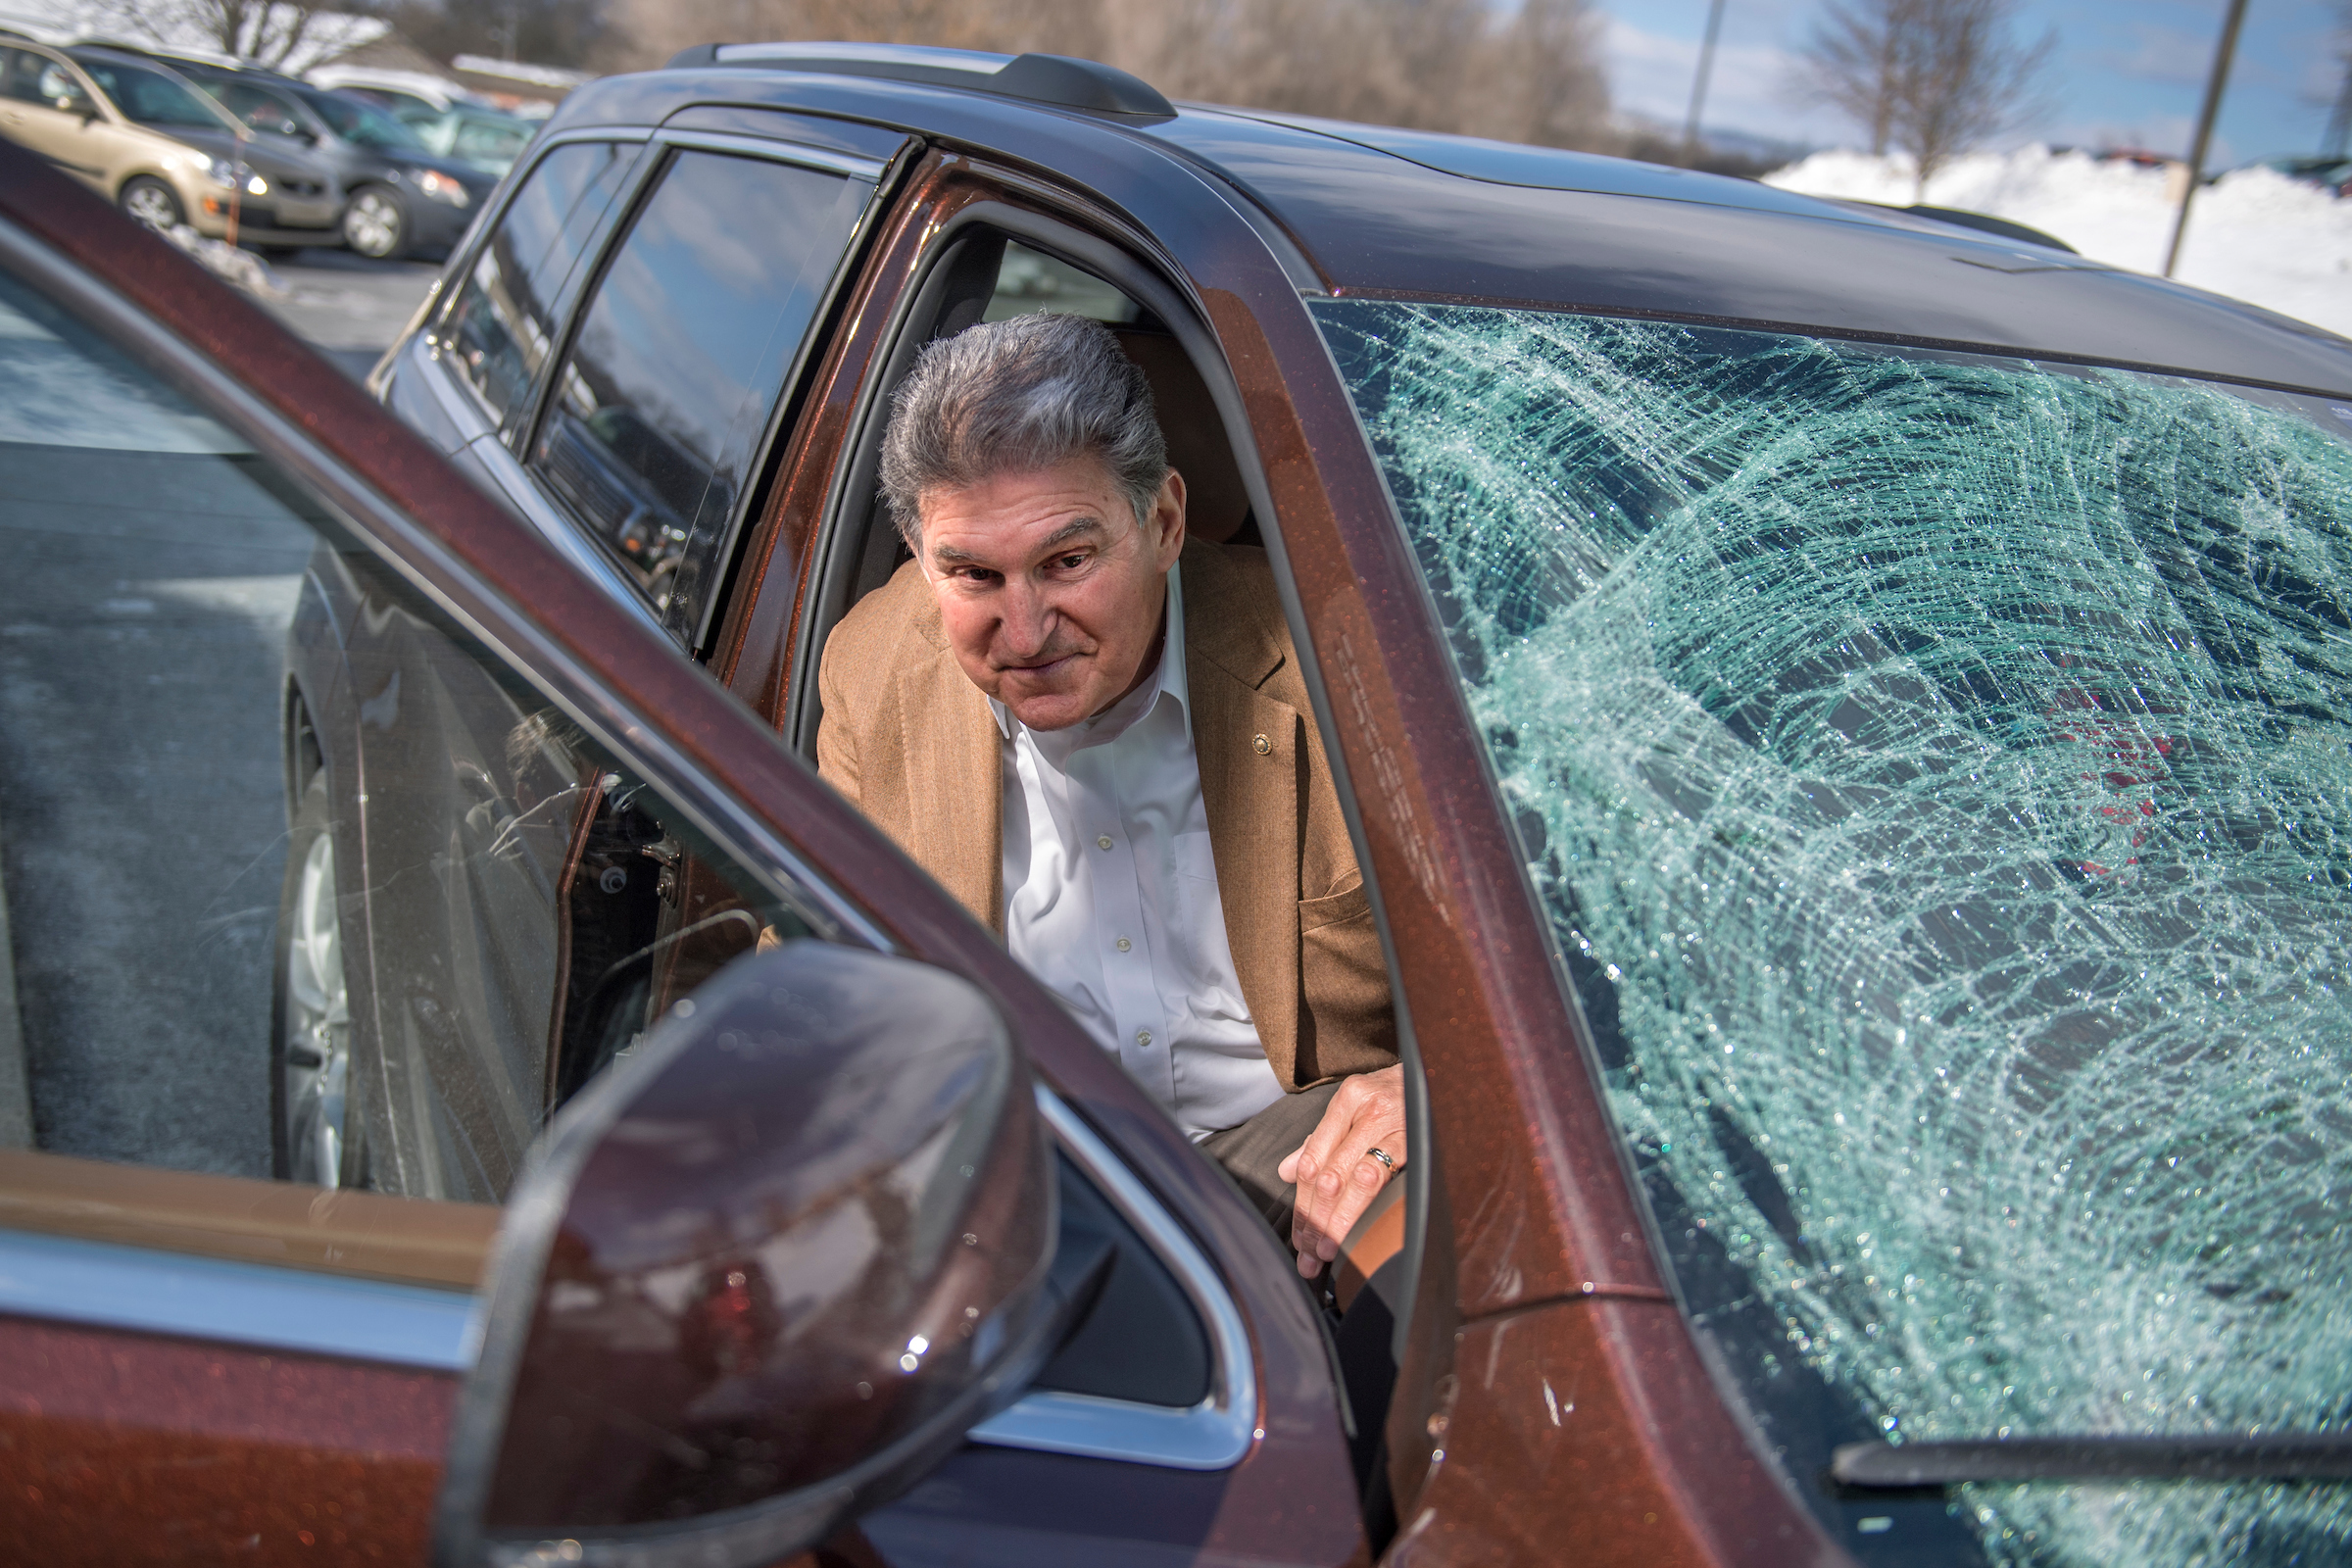 UNITED STATES - MARCH 16: Sen. Joe Manchin, D-W.Va., arrives for town hall meeting at the WVU Robert C. Byrd Health Sciences Center in Martinsburg, W.Va., after his windshield was shattered by a piece of ice,March 16, 2017. Much the discussion was regarding the American Health Care Act, the Republican's plan to repeal and replace the ACA. (Photo By Tom Williams/CQ Roll Call)